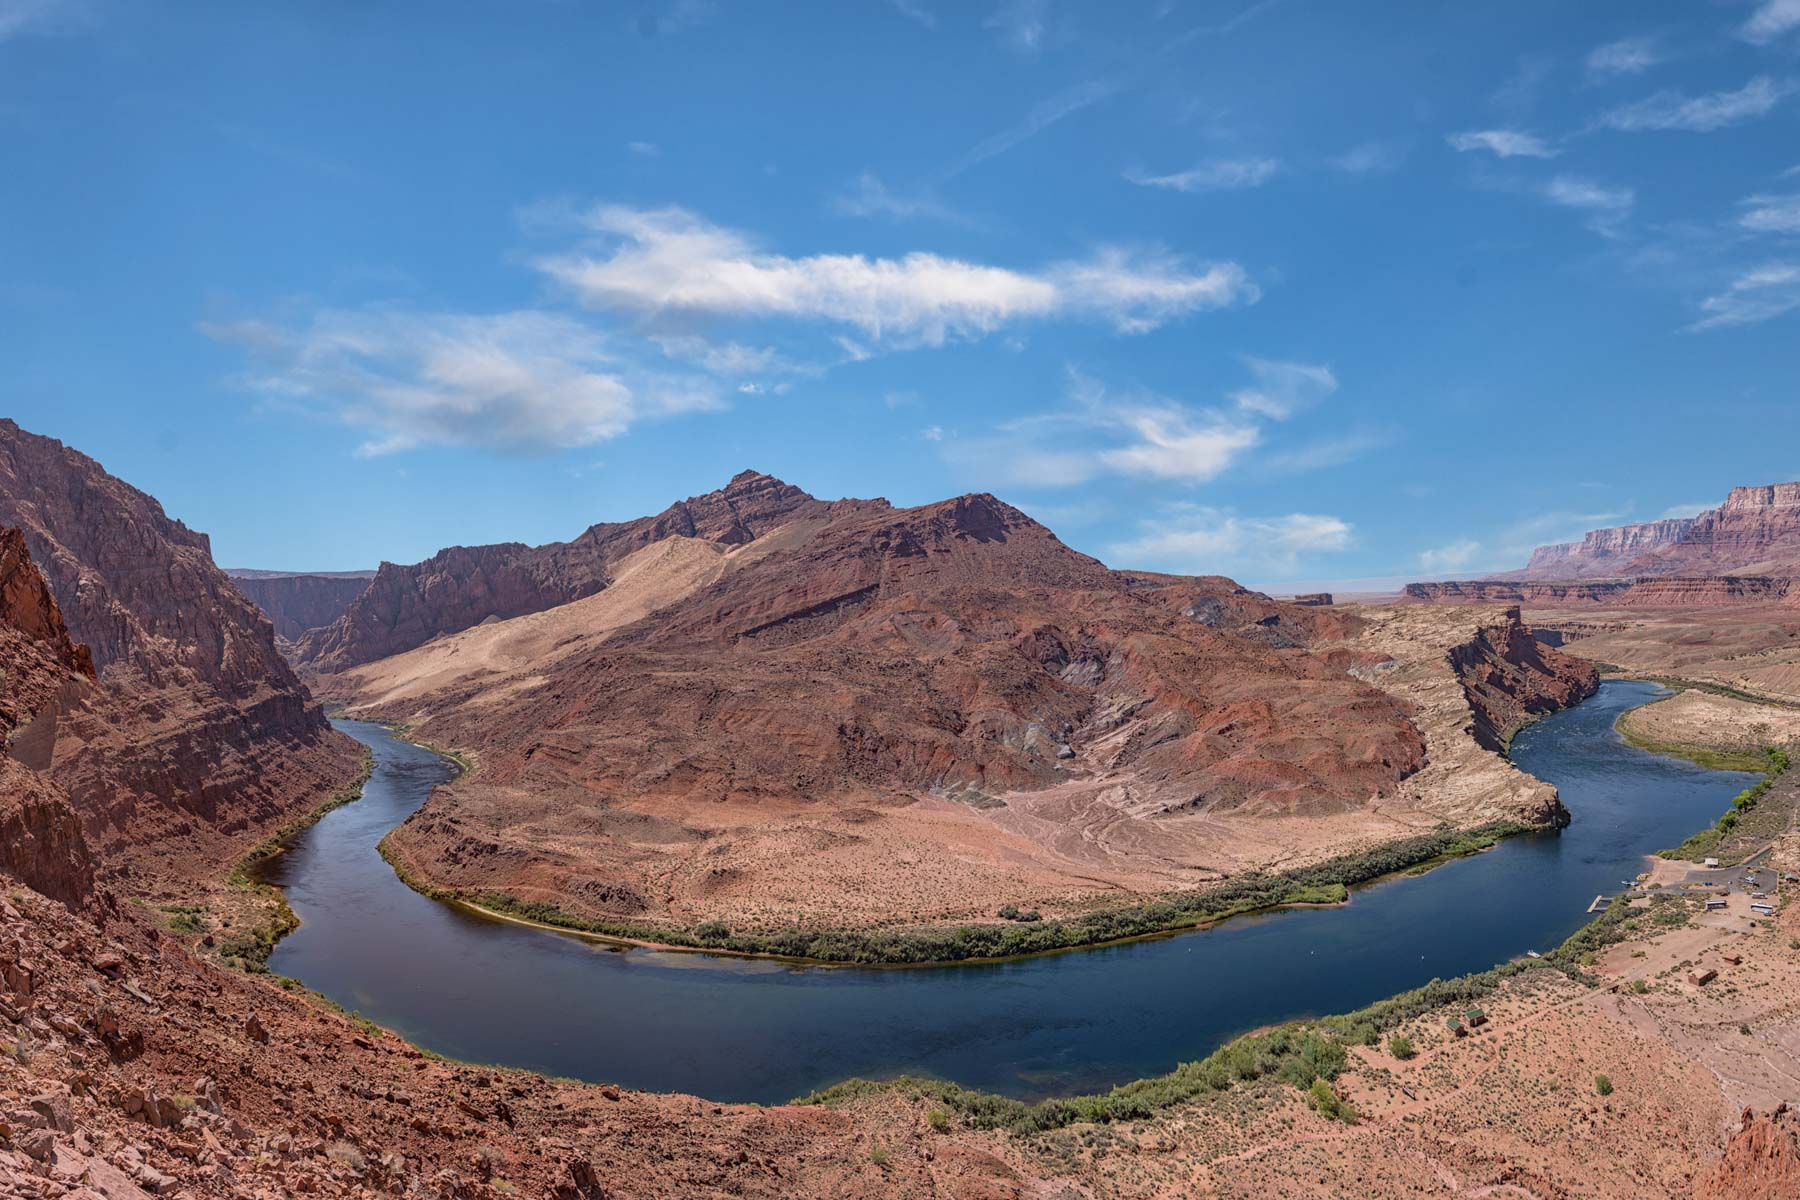 Bend in the Colorado River at Lees Ferry, Arizona